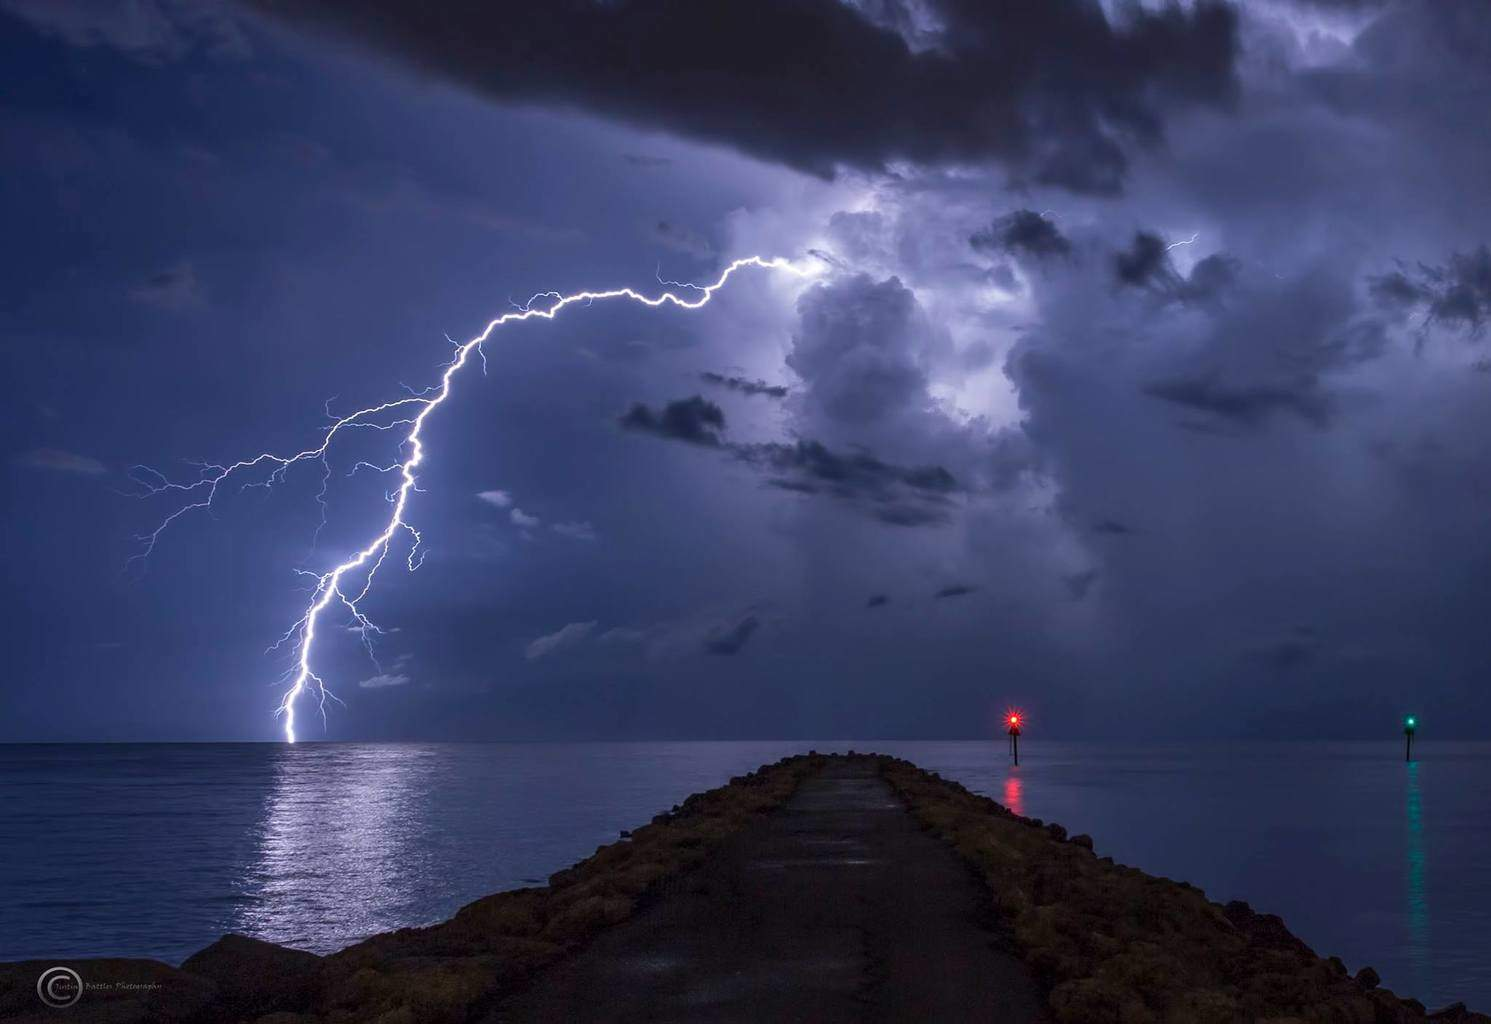 This storm spit out some awesome bolts at the South Jetty in Venice, Fl 7-10-15